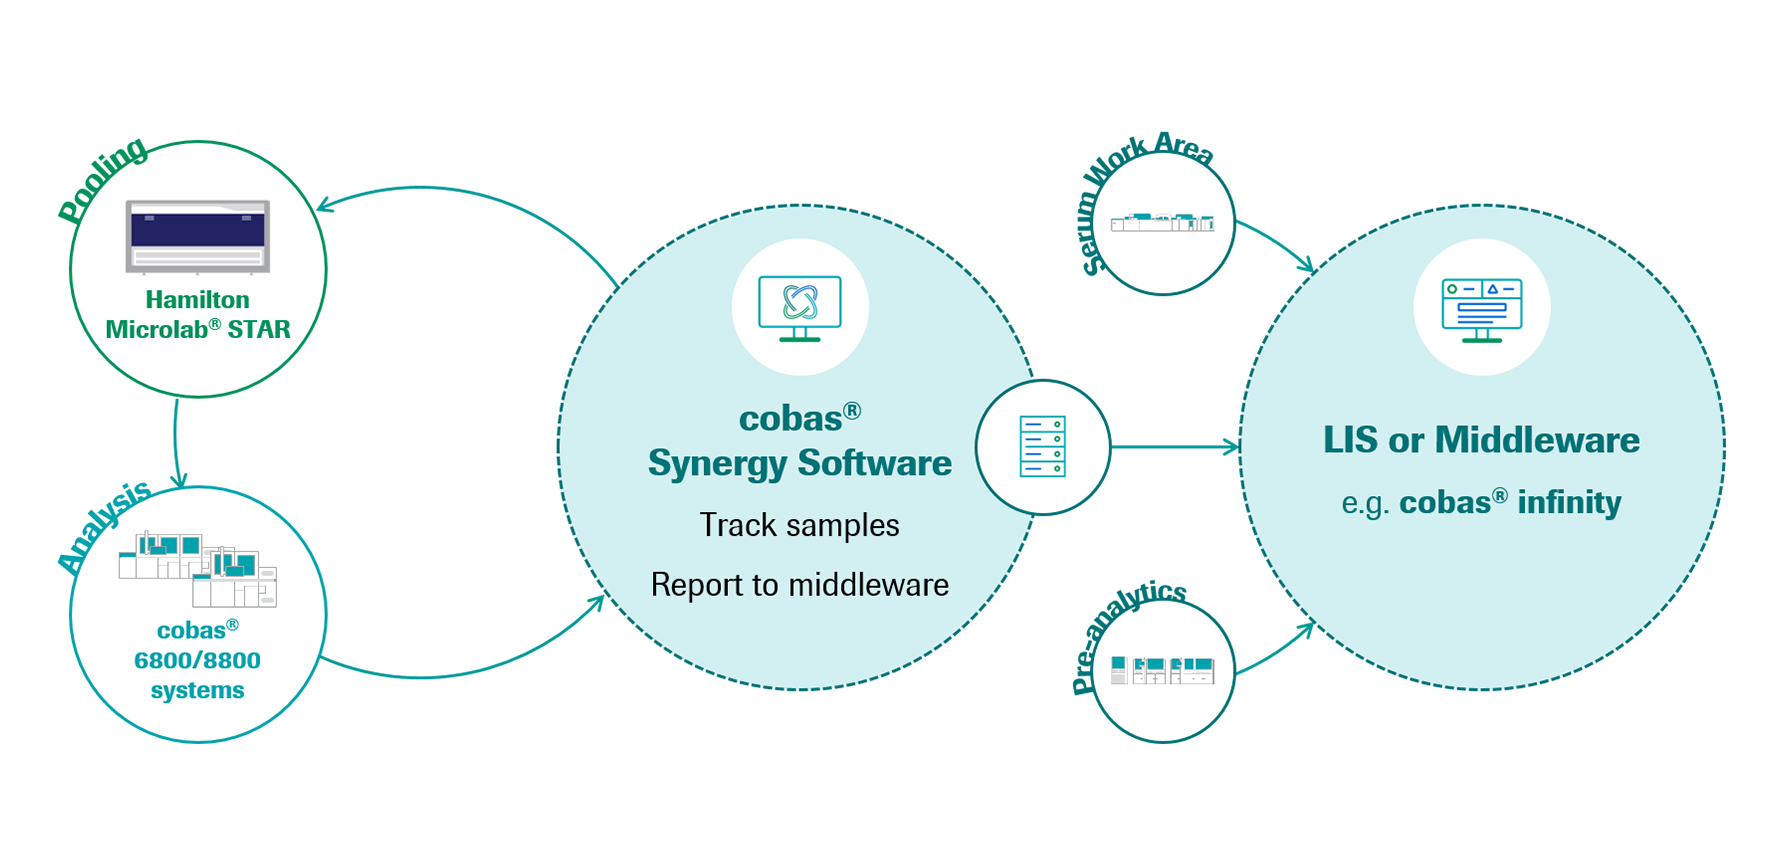 cobas synergy solution overview